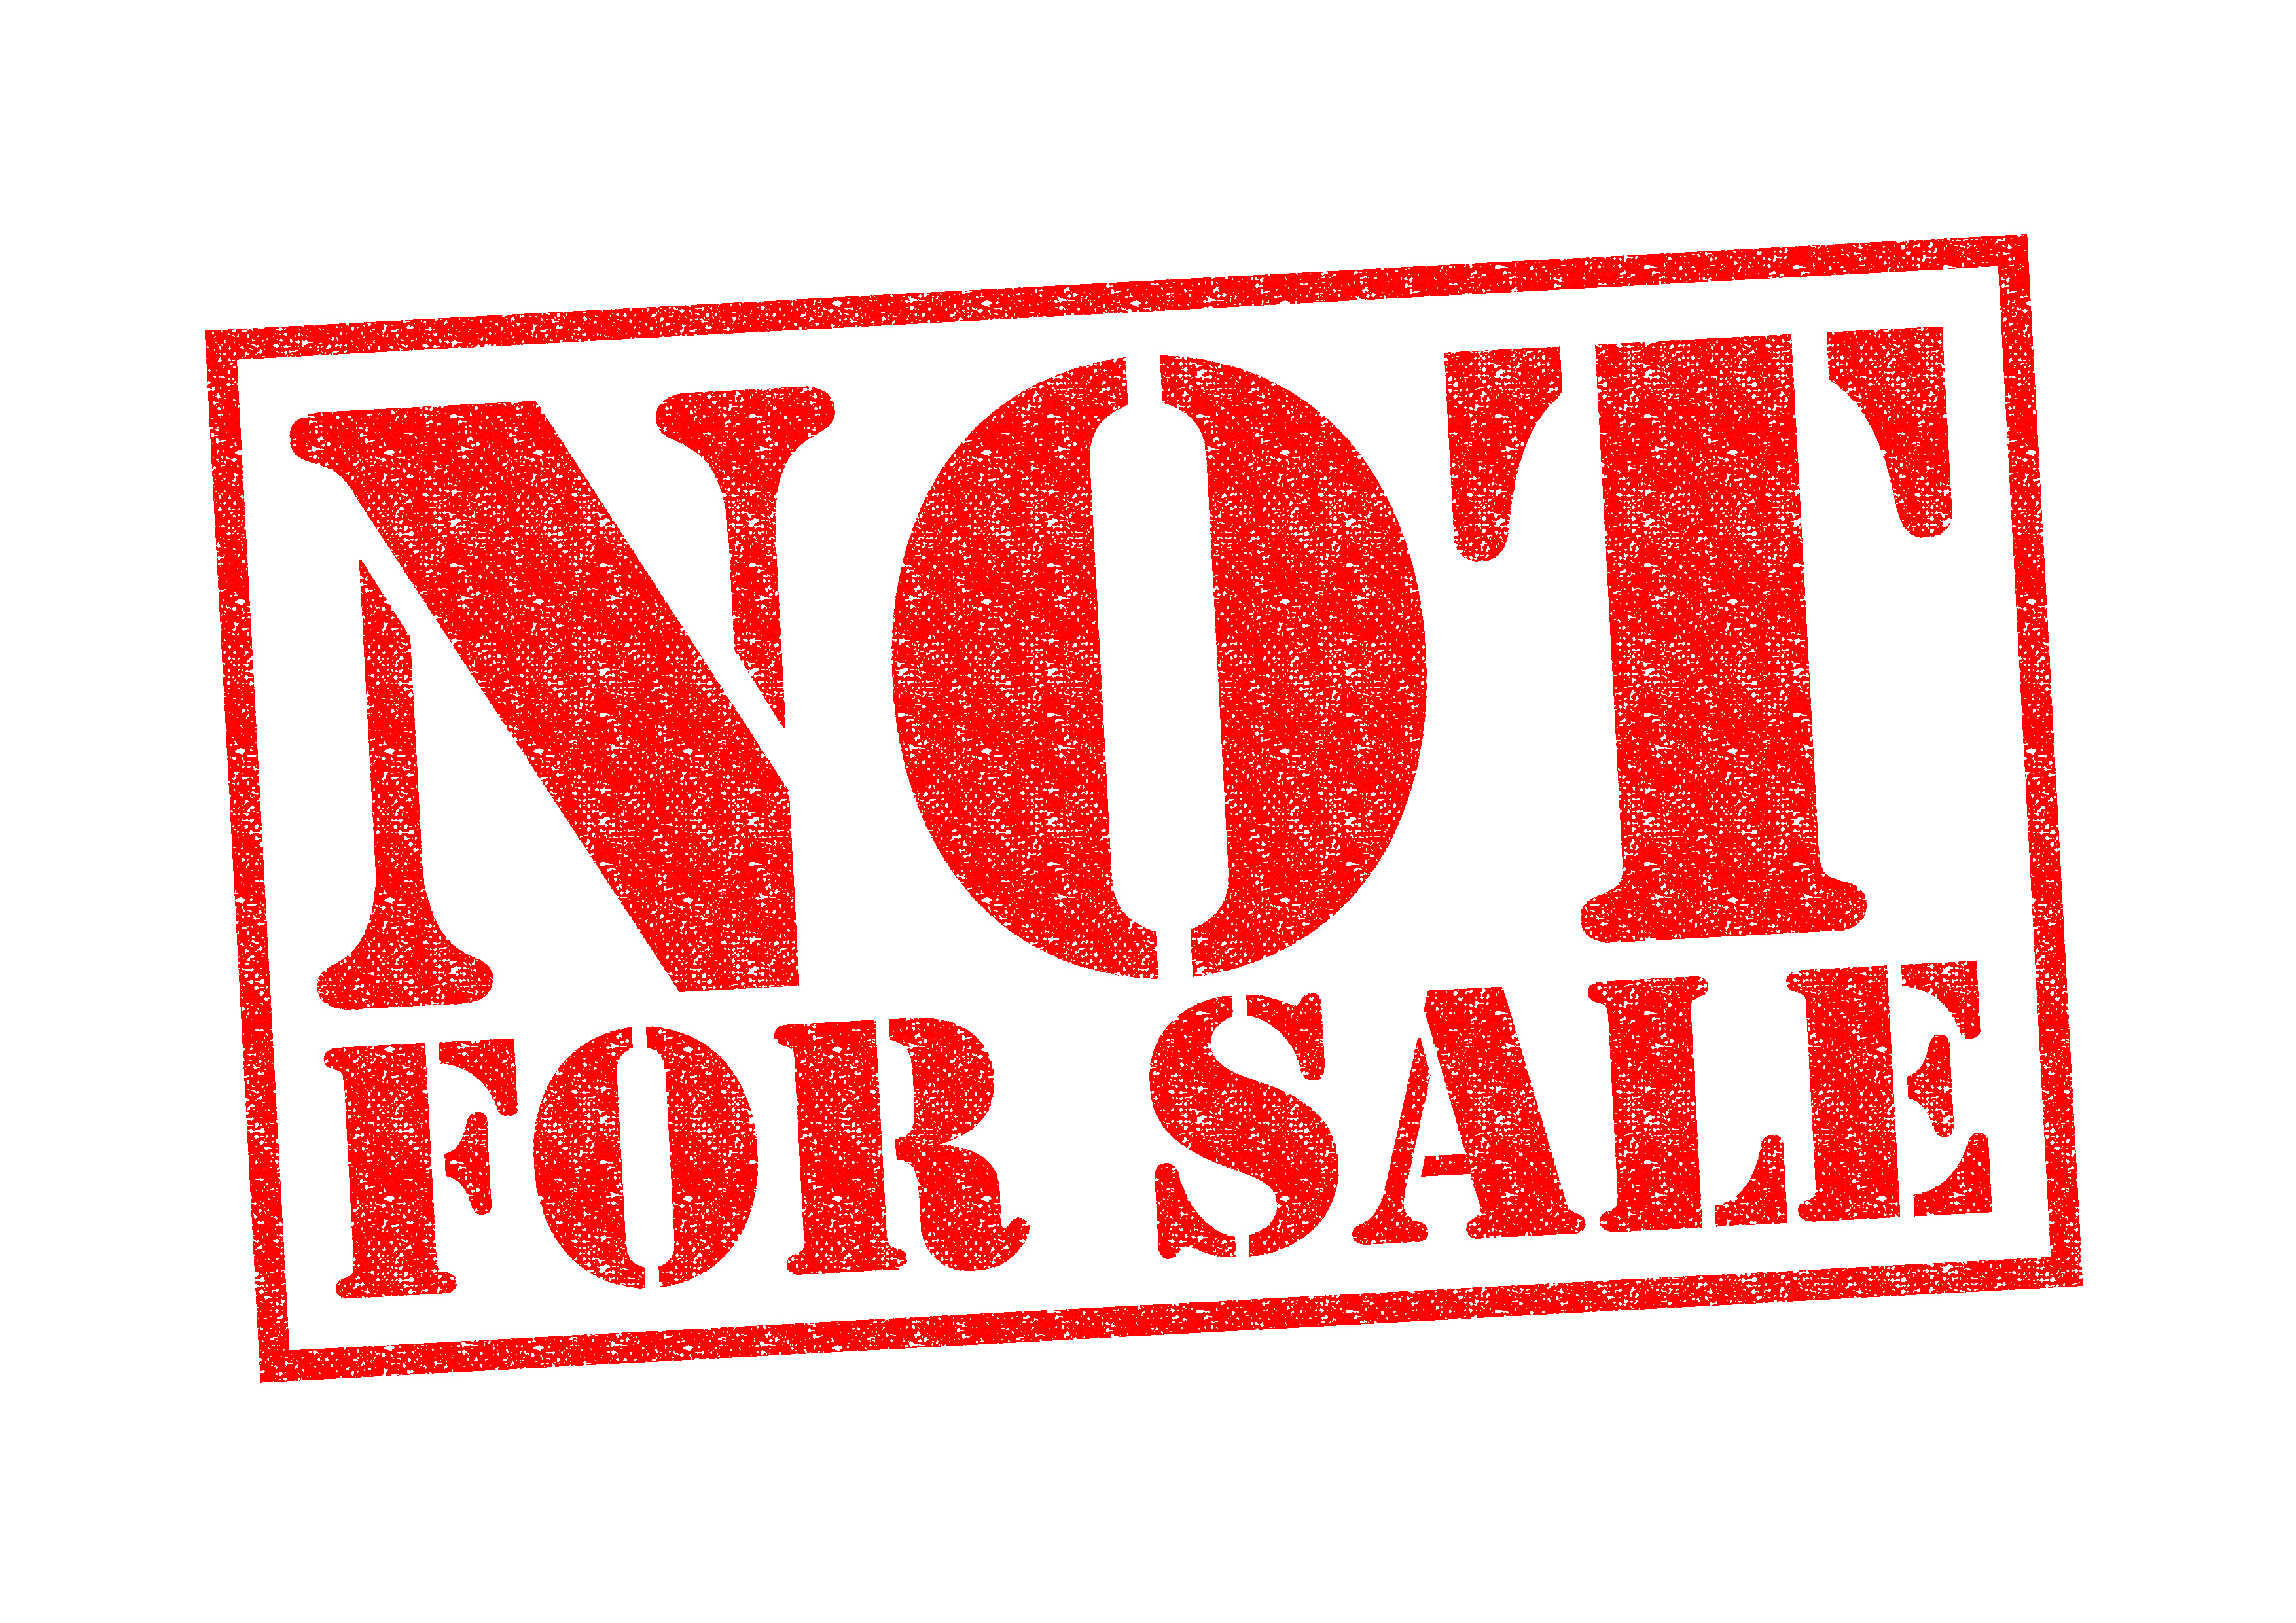 Car Carrier For Sale >> Selling Your Agency May Be Hazardous to Your (Financial) Health